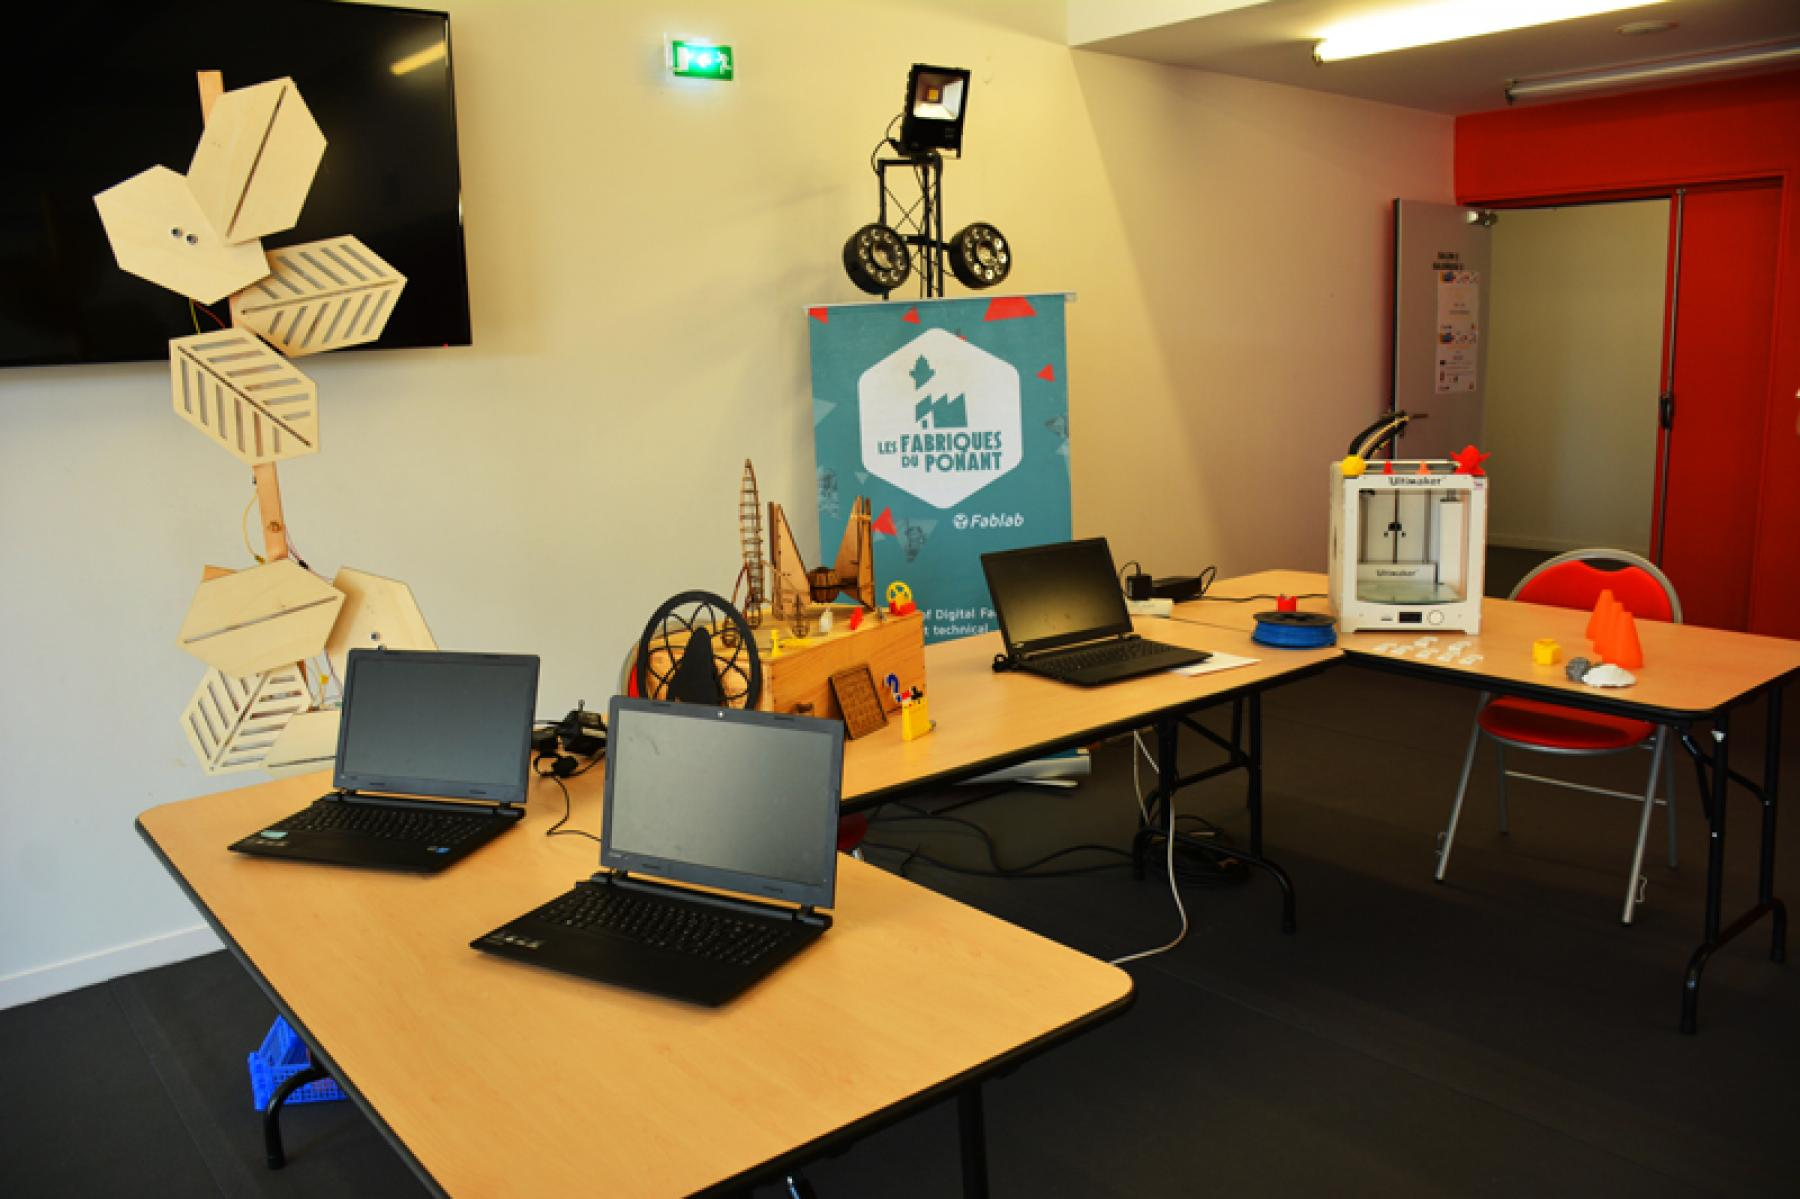 One of the stands set up at the employment event